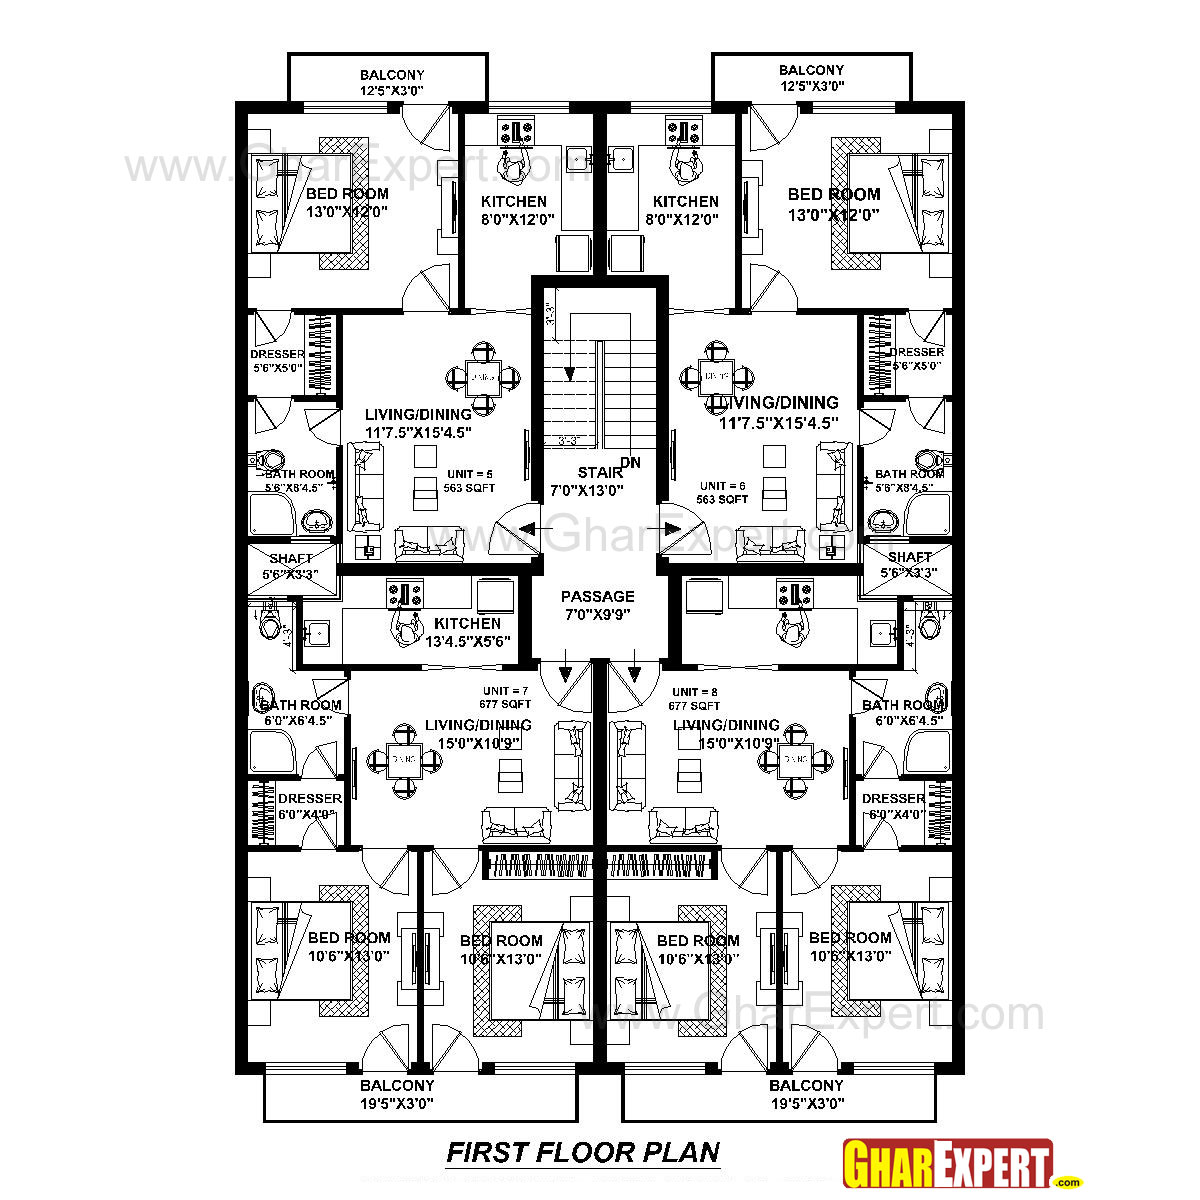 Apartment plan for 45 feet by 60 feet plot plot size 300 for 300 sq ft home plans